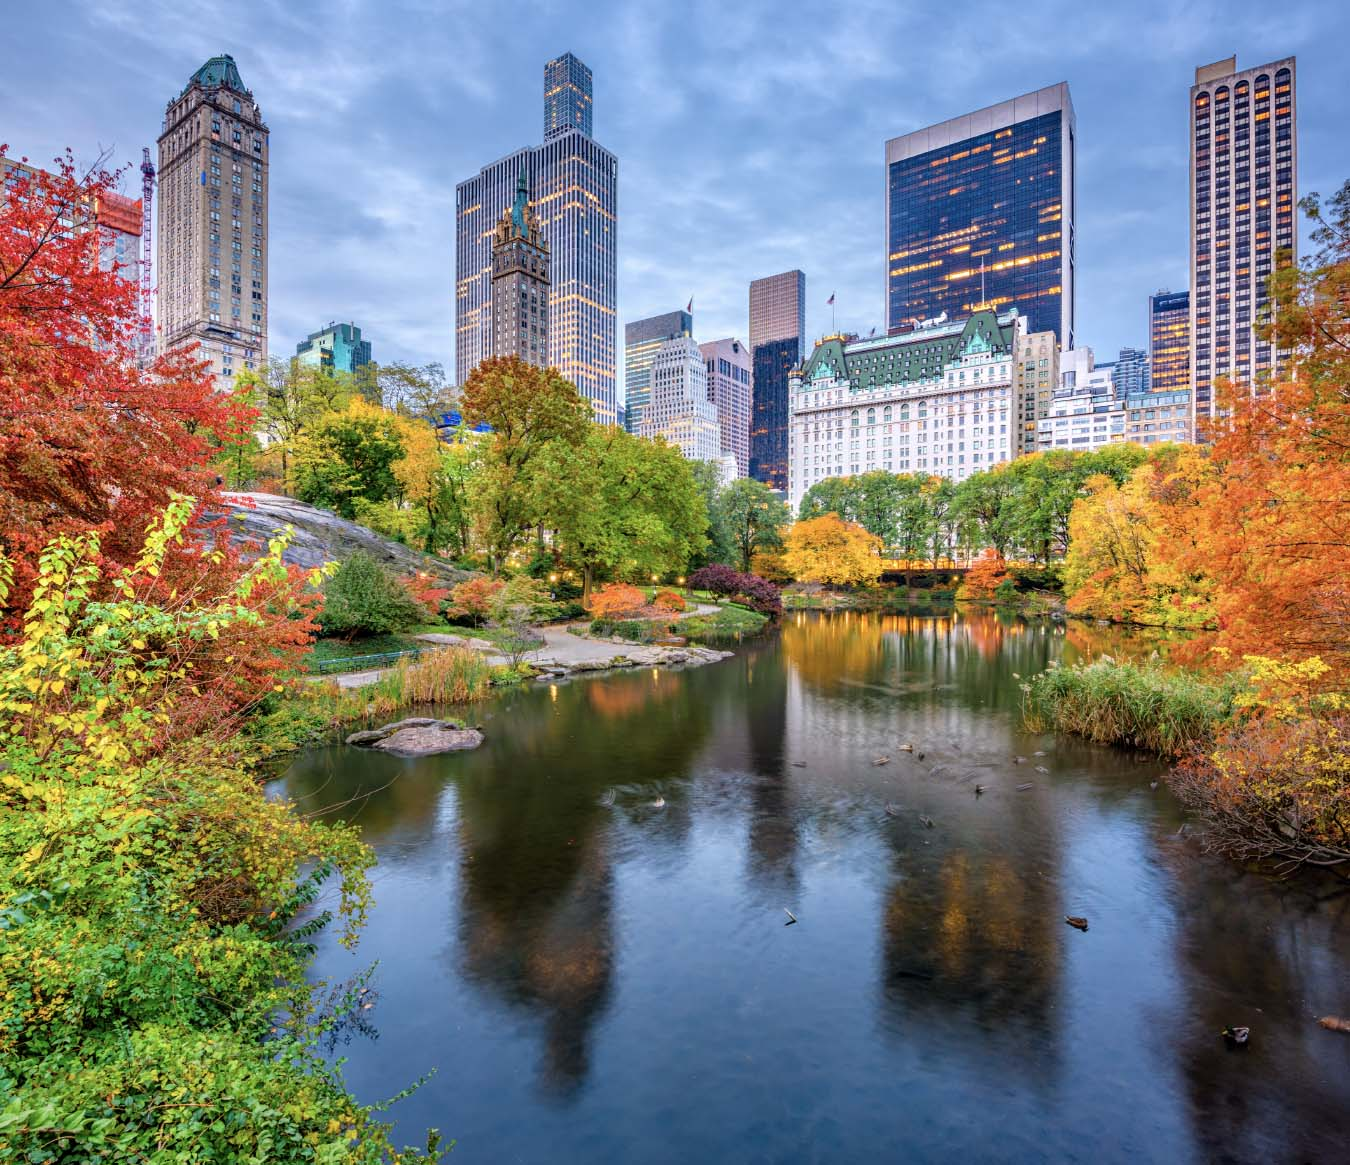 Things to Do in New York City - Central Park